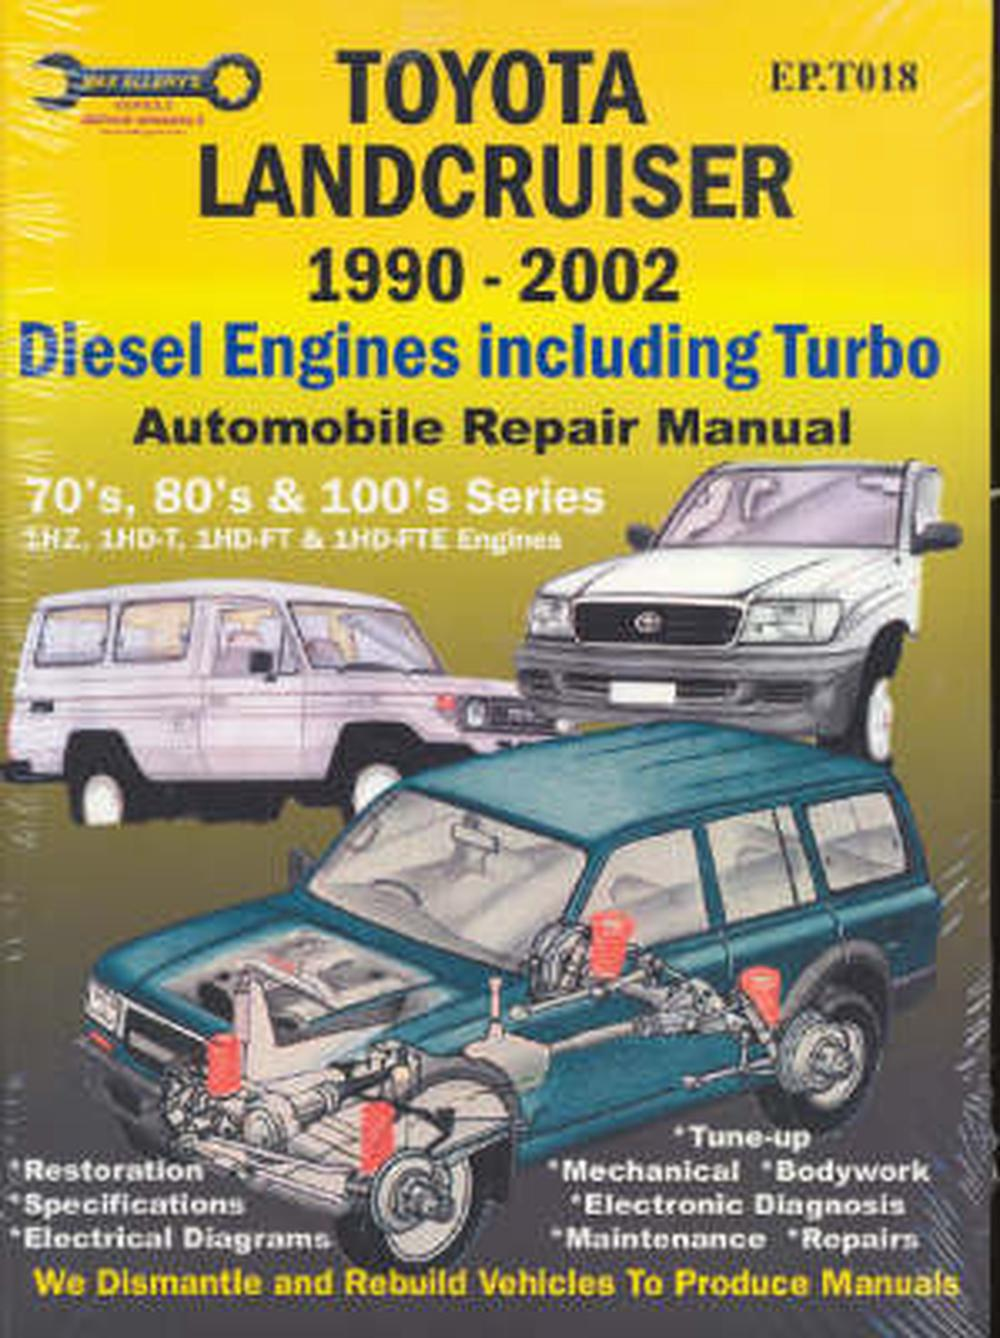 Toyota Landcruiser 1990 2007 Automobile Repair Manual Diesel Wiring Diagram For Land Cruiser Engines Including Turbo